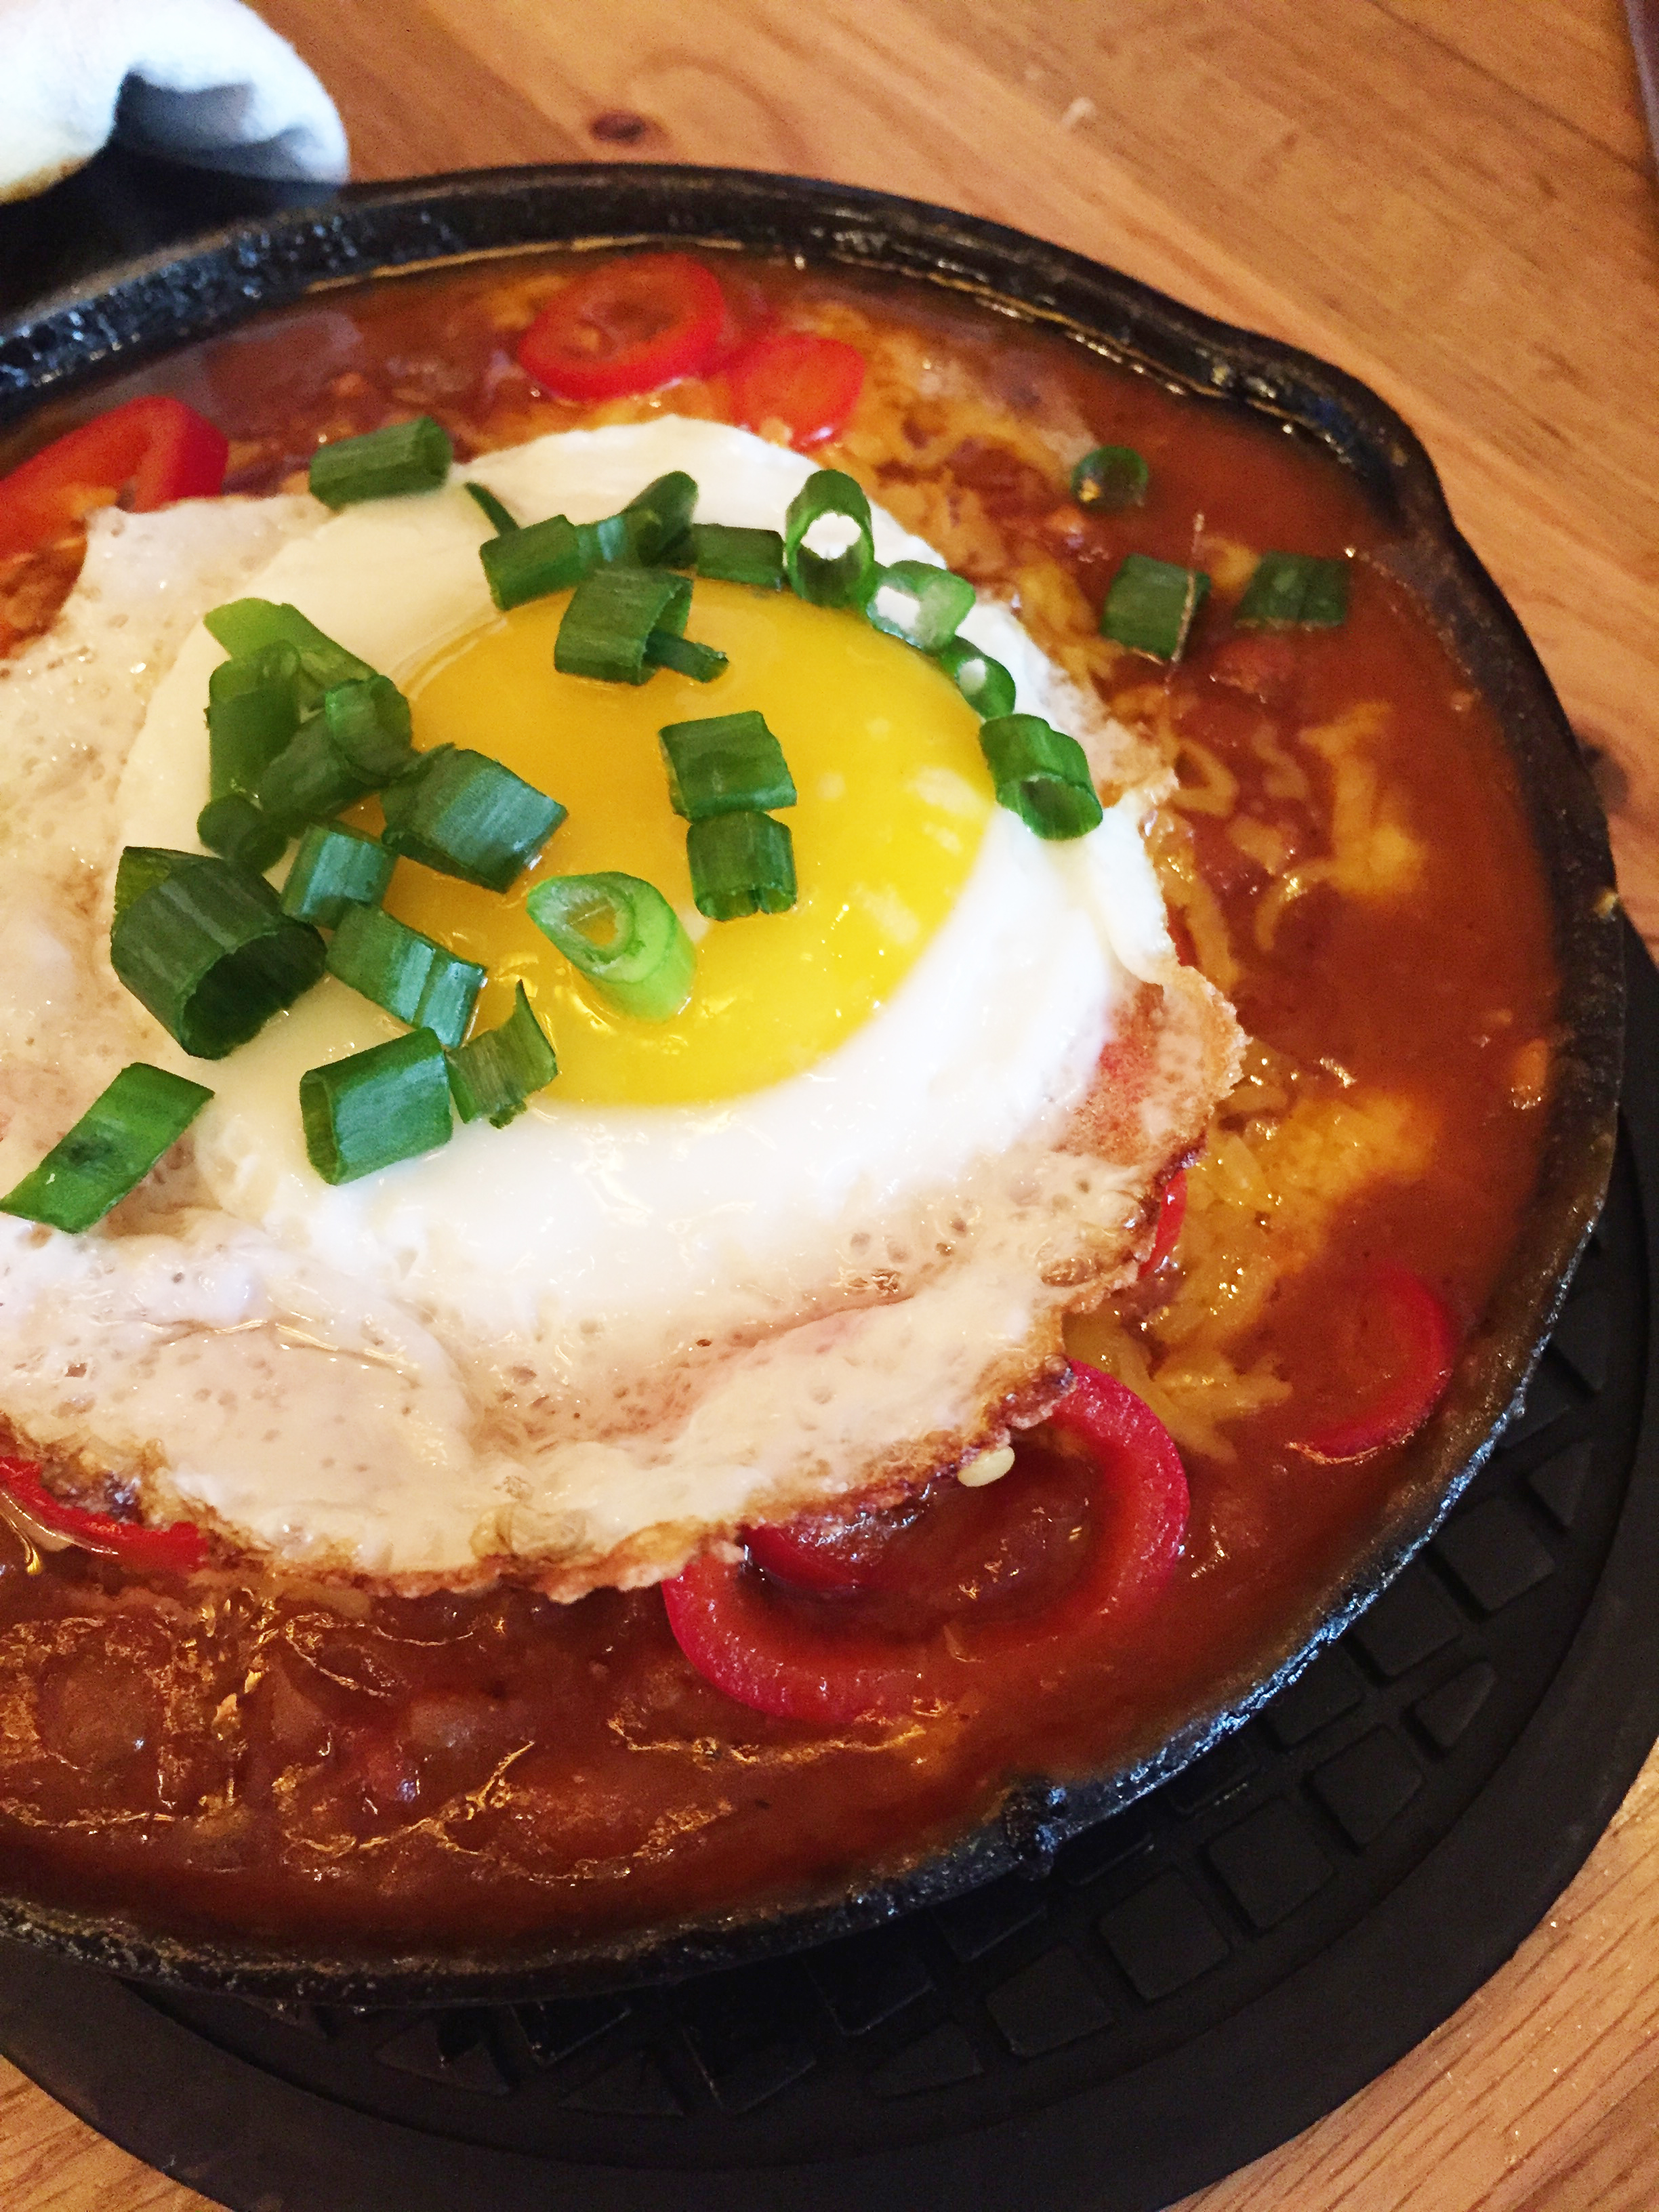 Hangover Hoe Cake with fried egg, chili, cheddar, green onions, and pickled chilies.